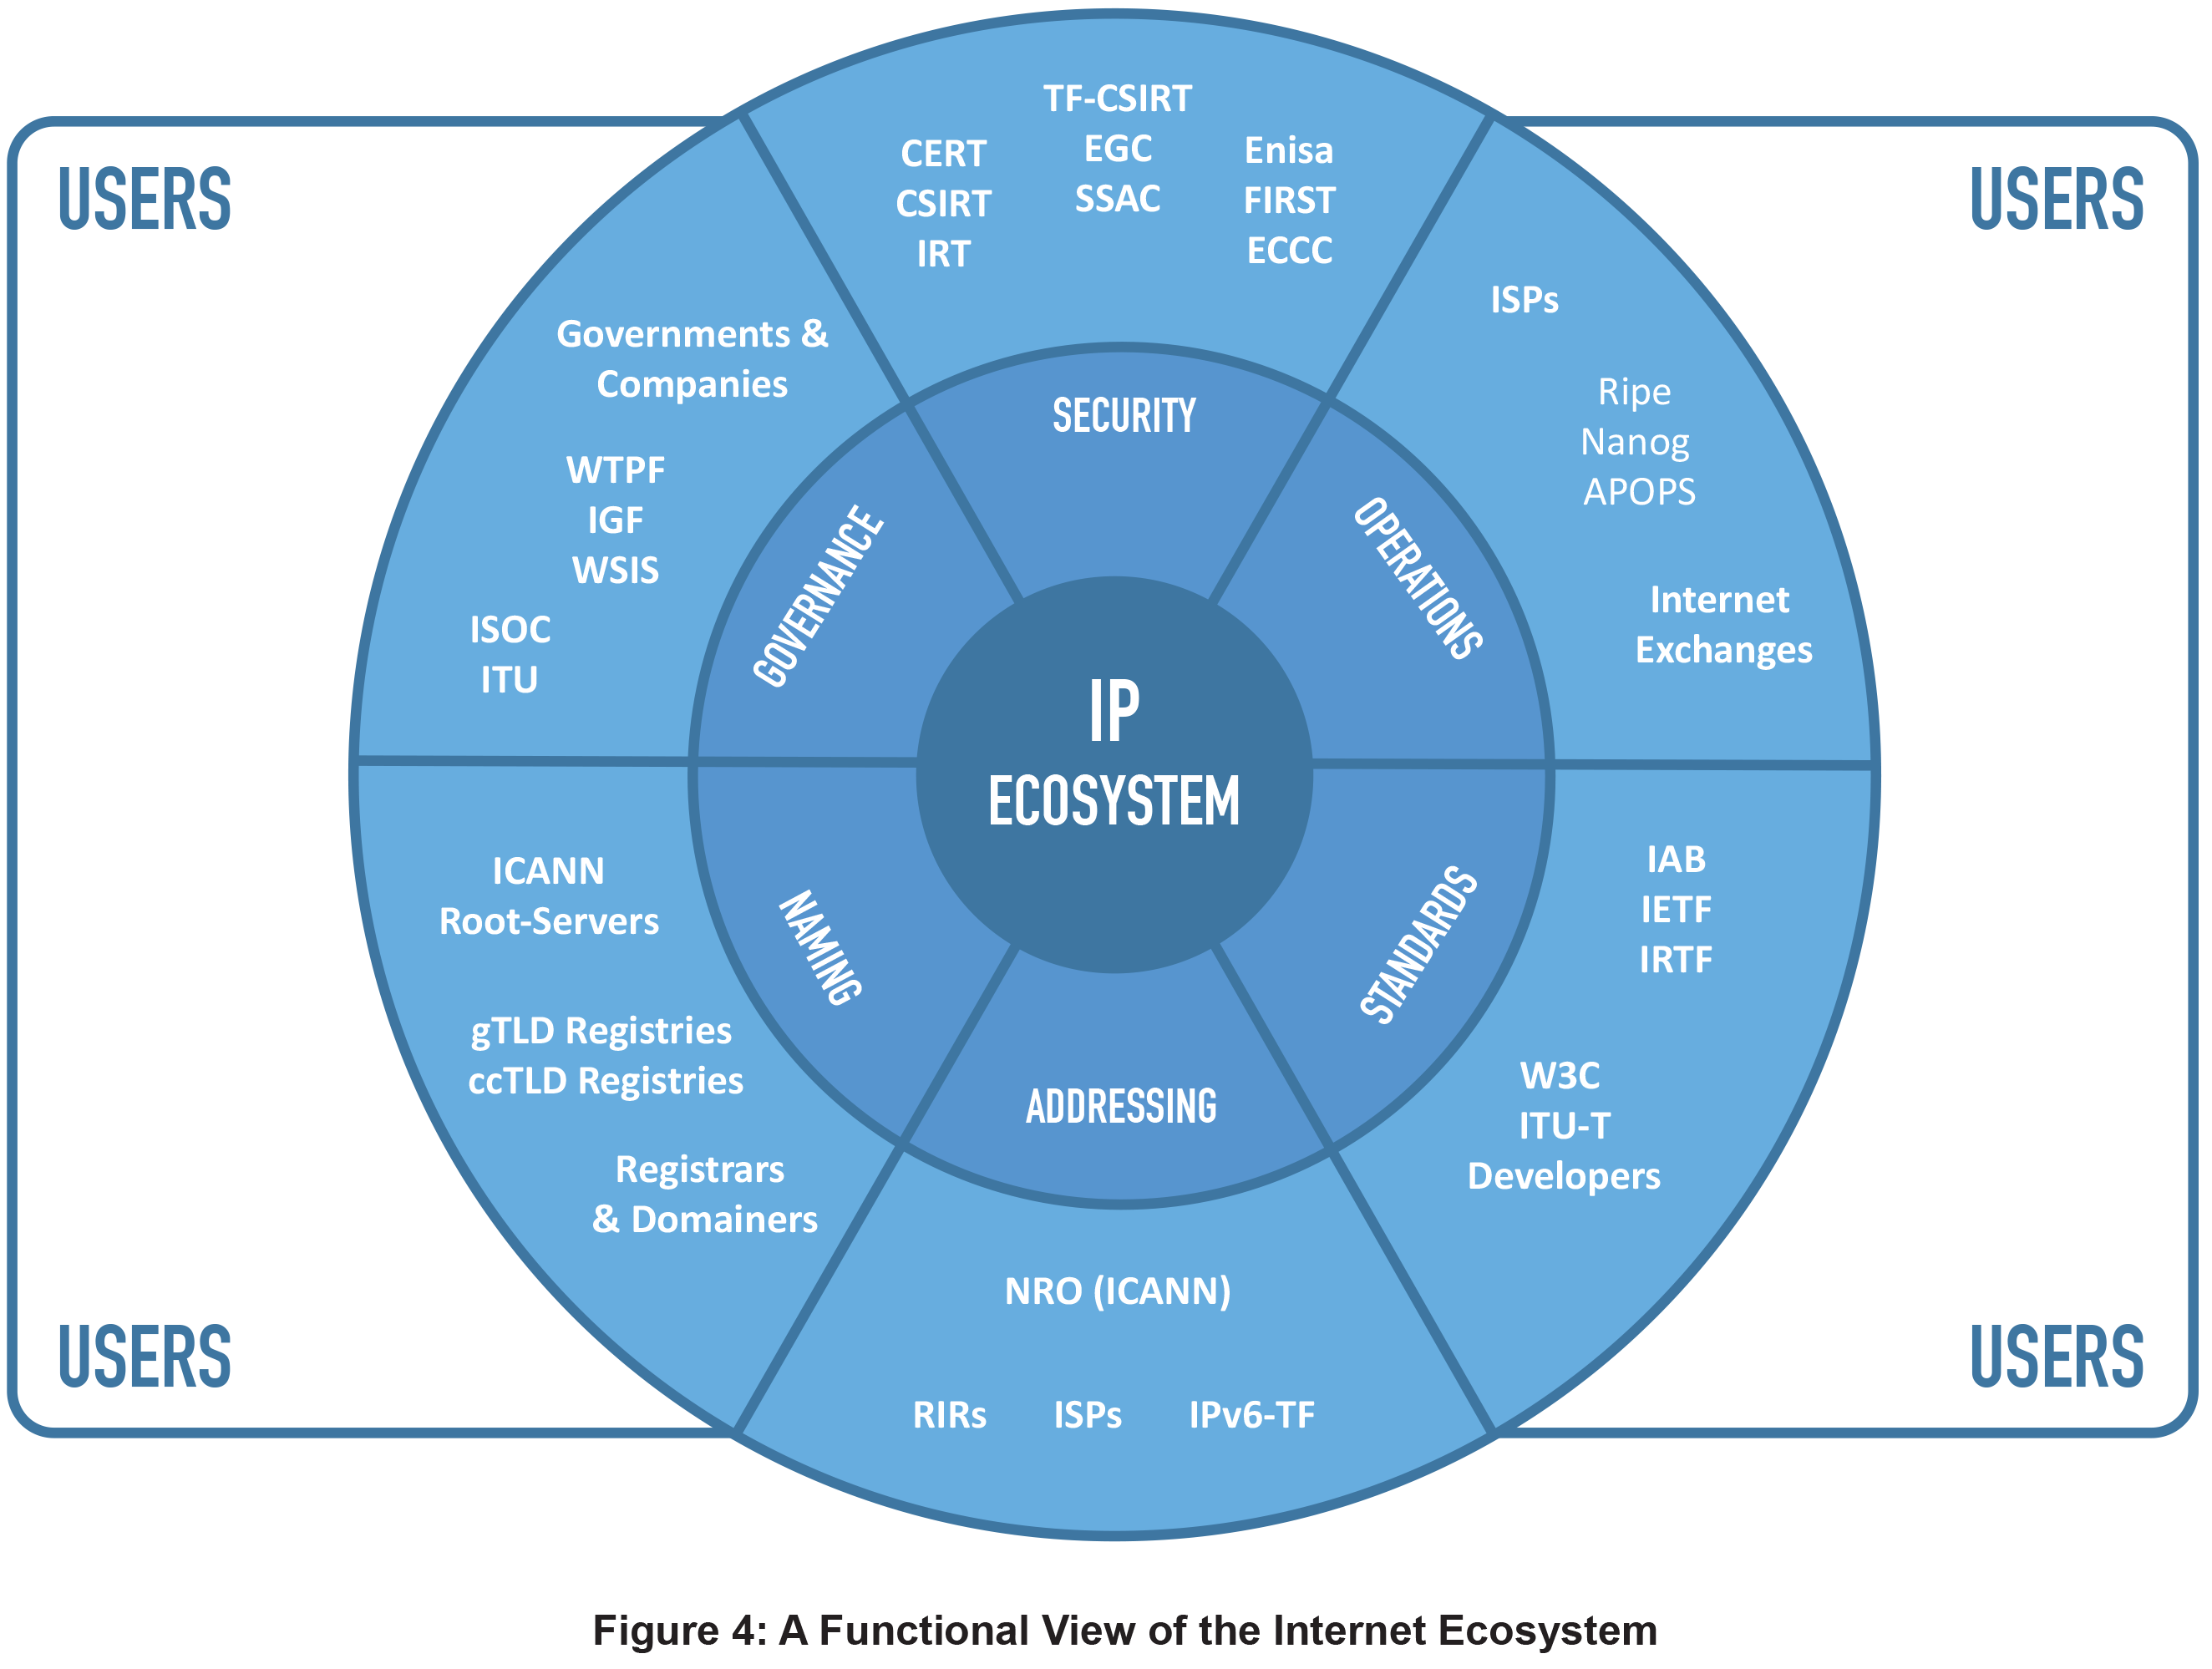 Figure 4: A Functional View of the Internet Ecosystem